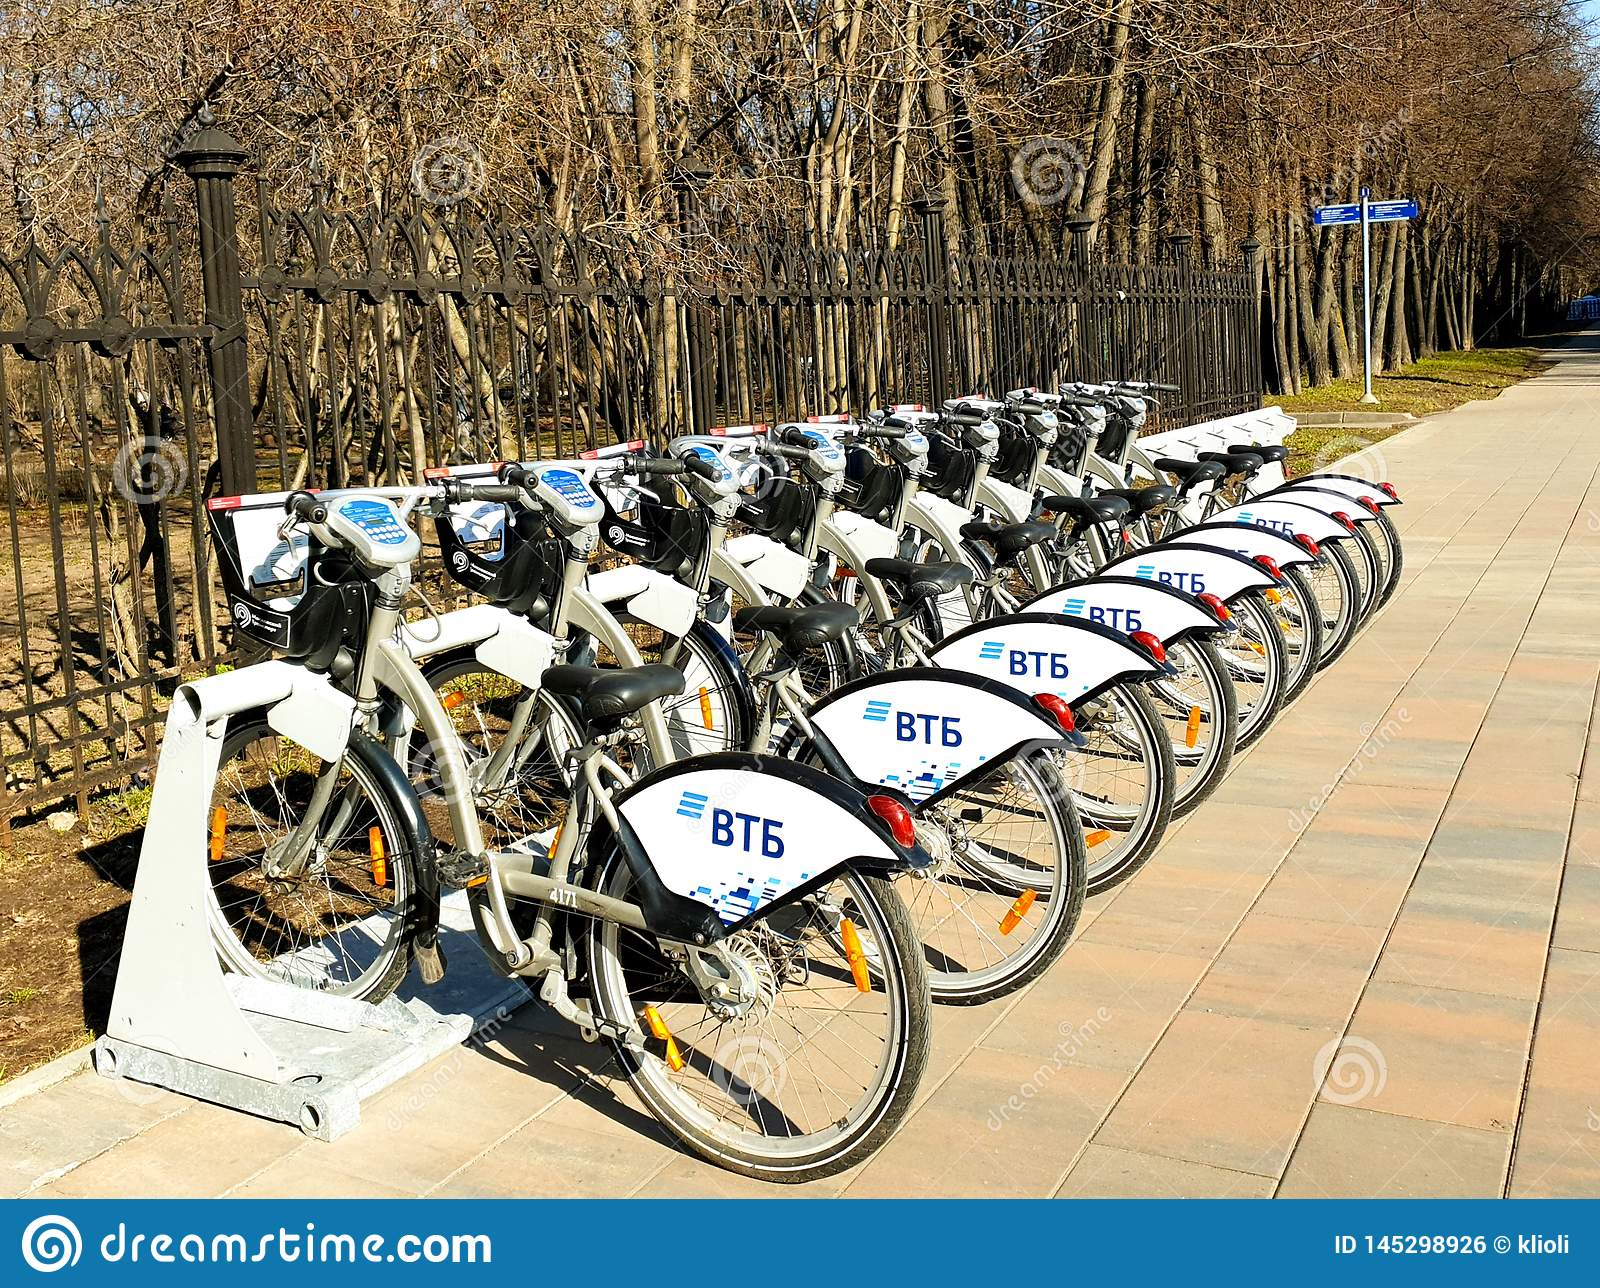 MOSCOW, RUSSIA - April 19, 2019. City bikes for hire at an automatic rental station in Moscow against